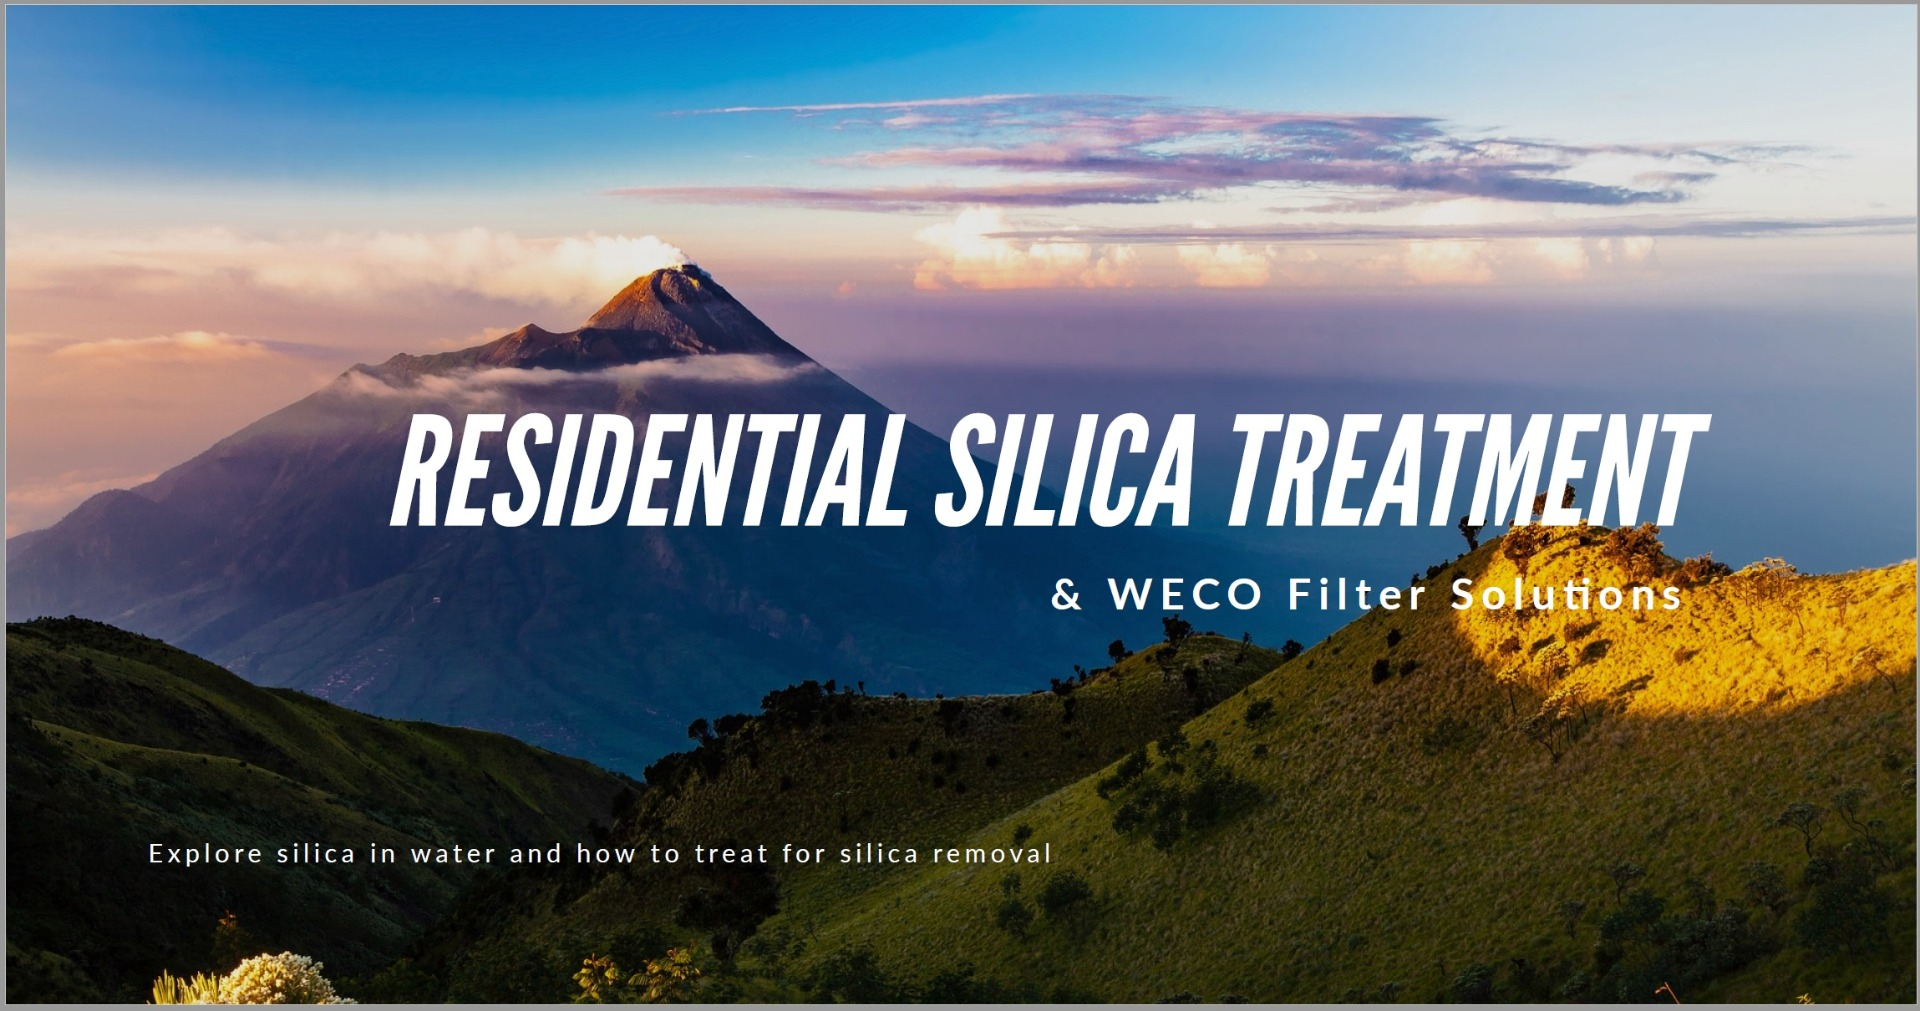 Resedential Silica Treatment